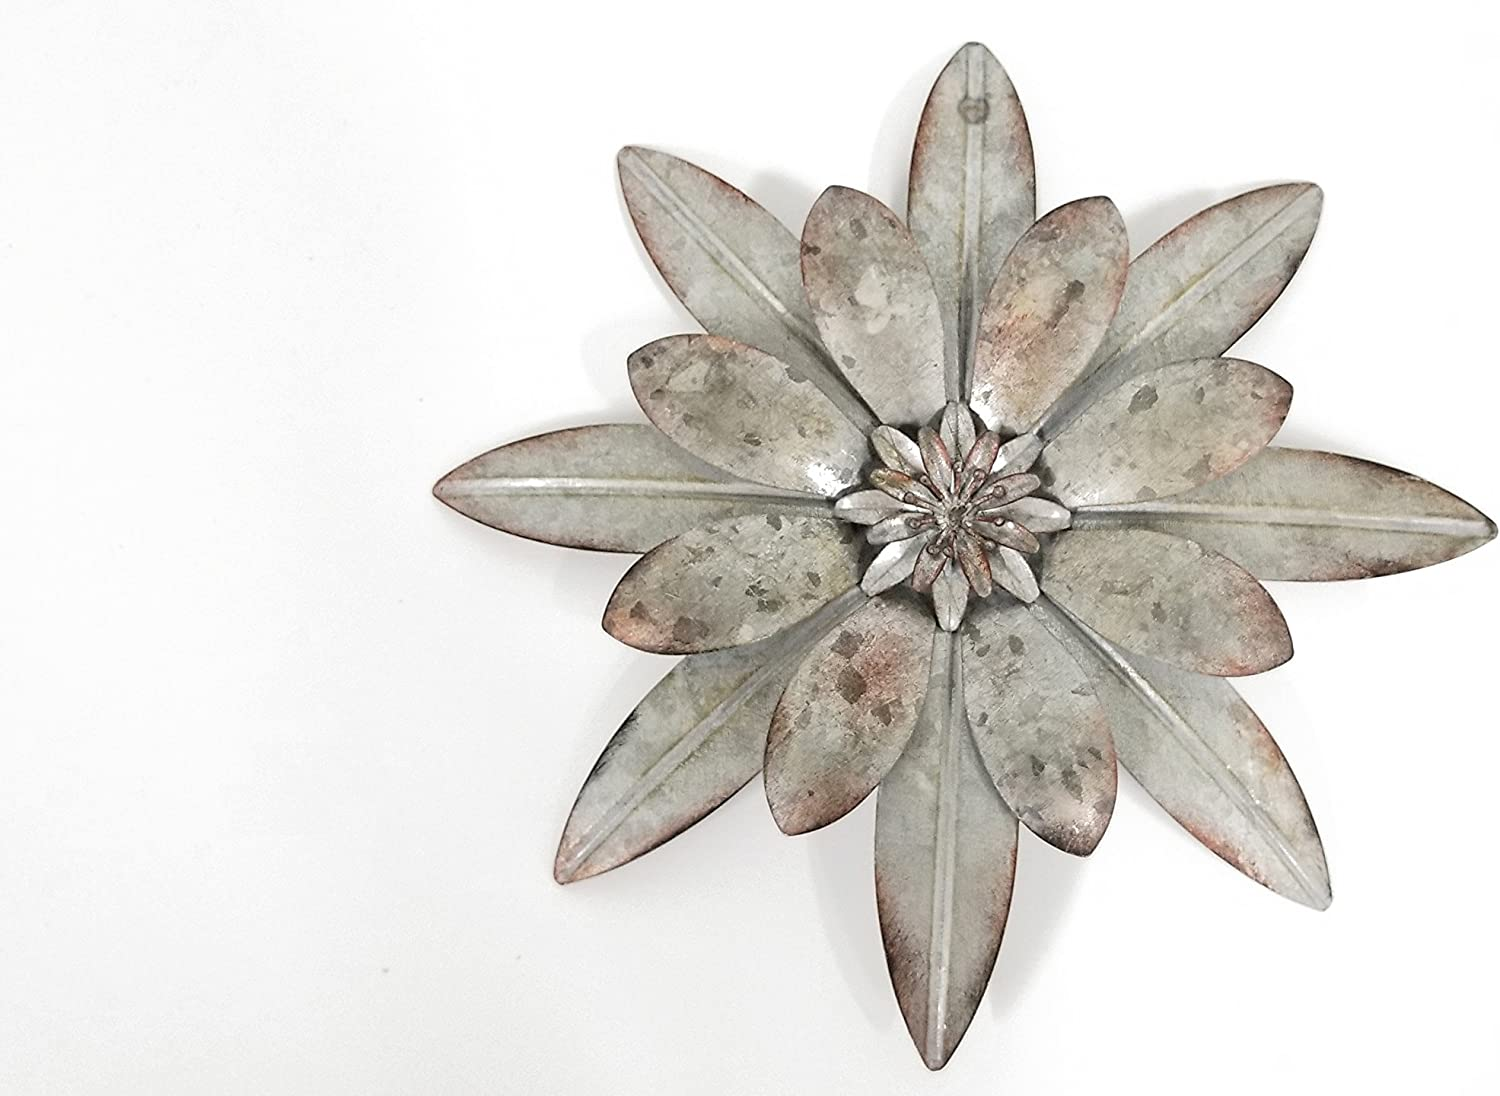 Everydecor Galvanized Metal Flower with Rustic Details